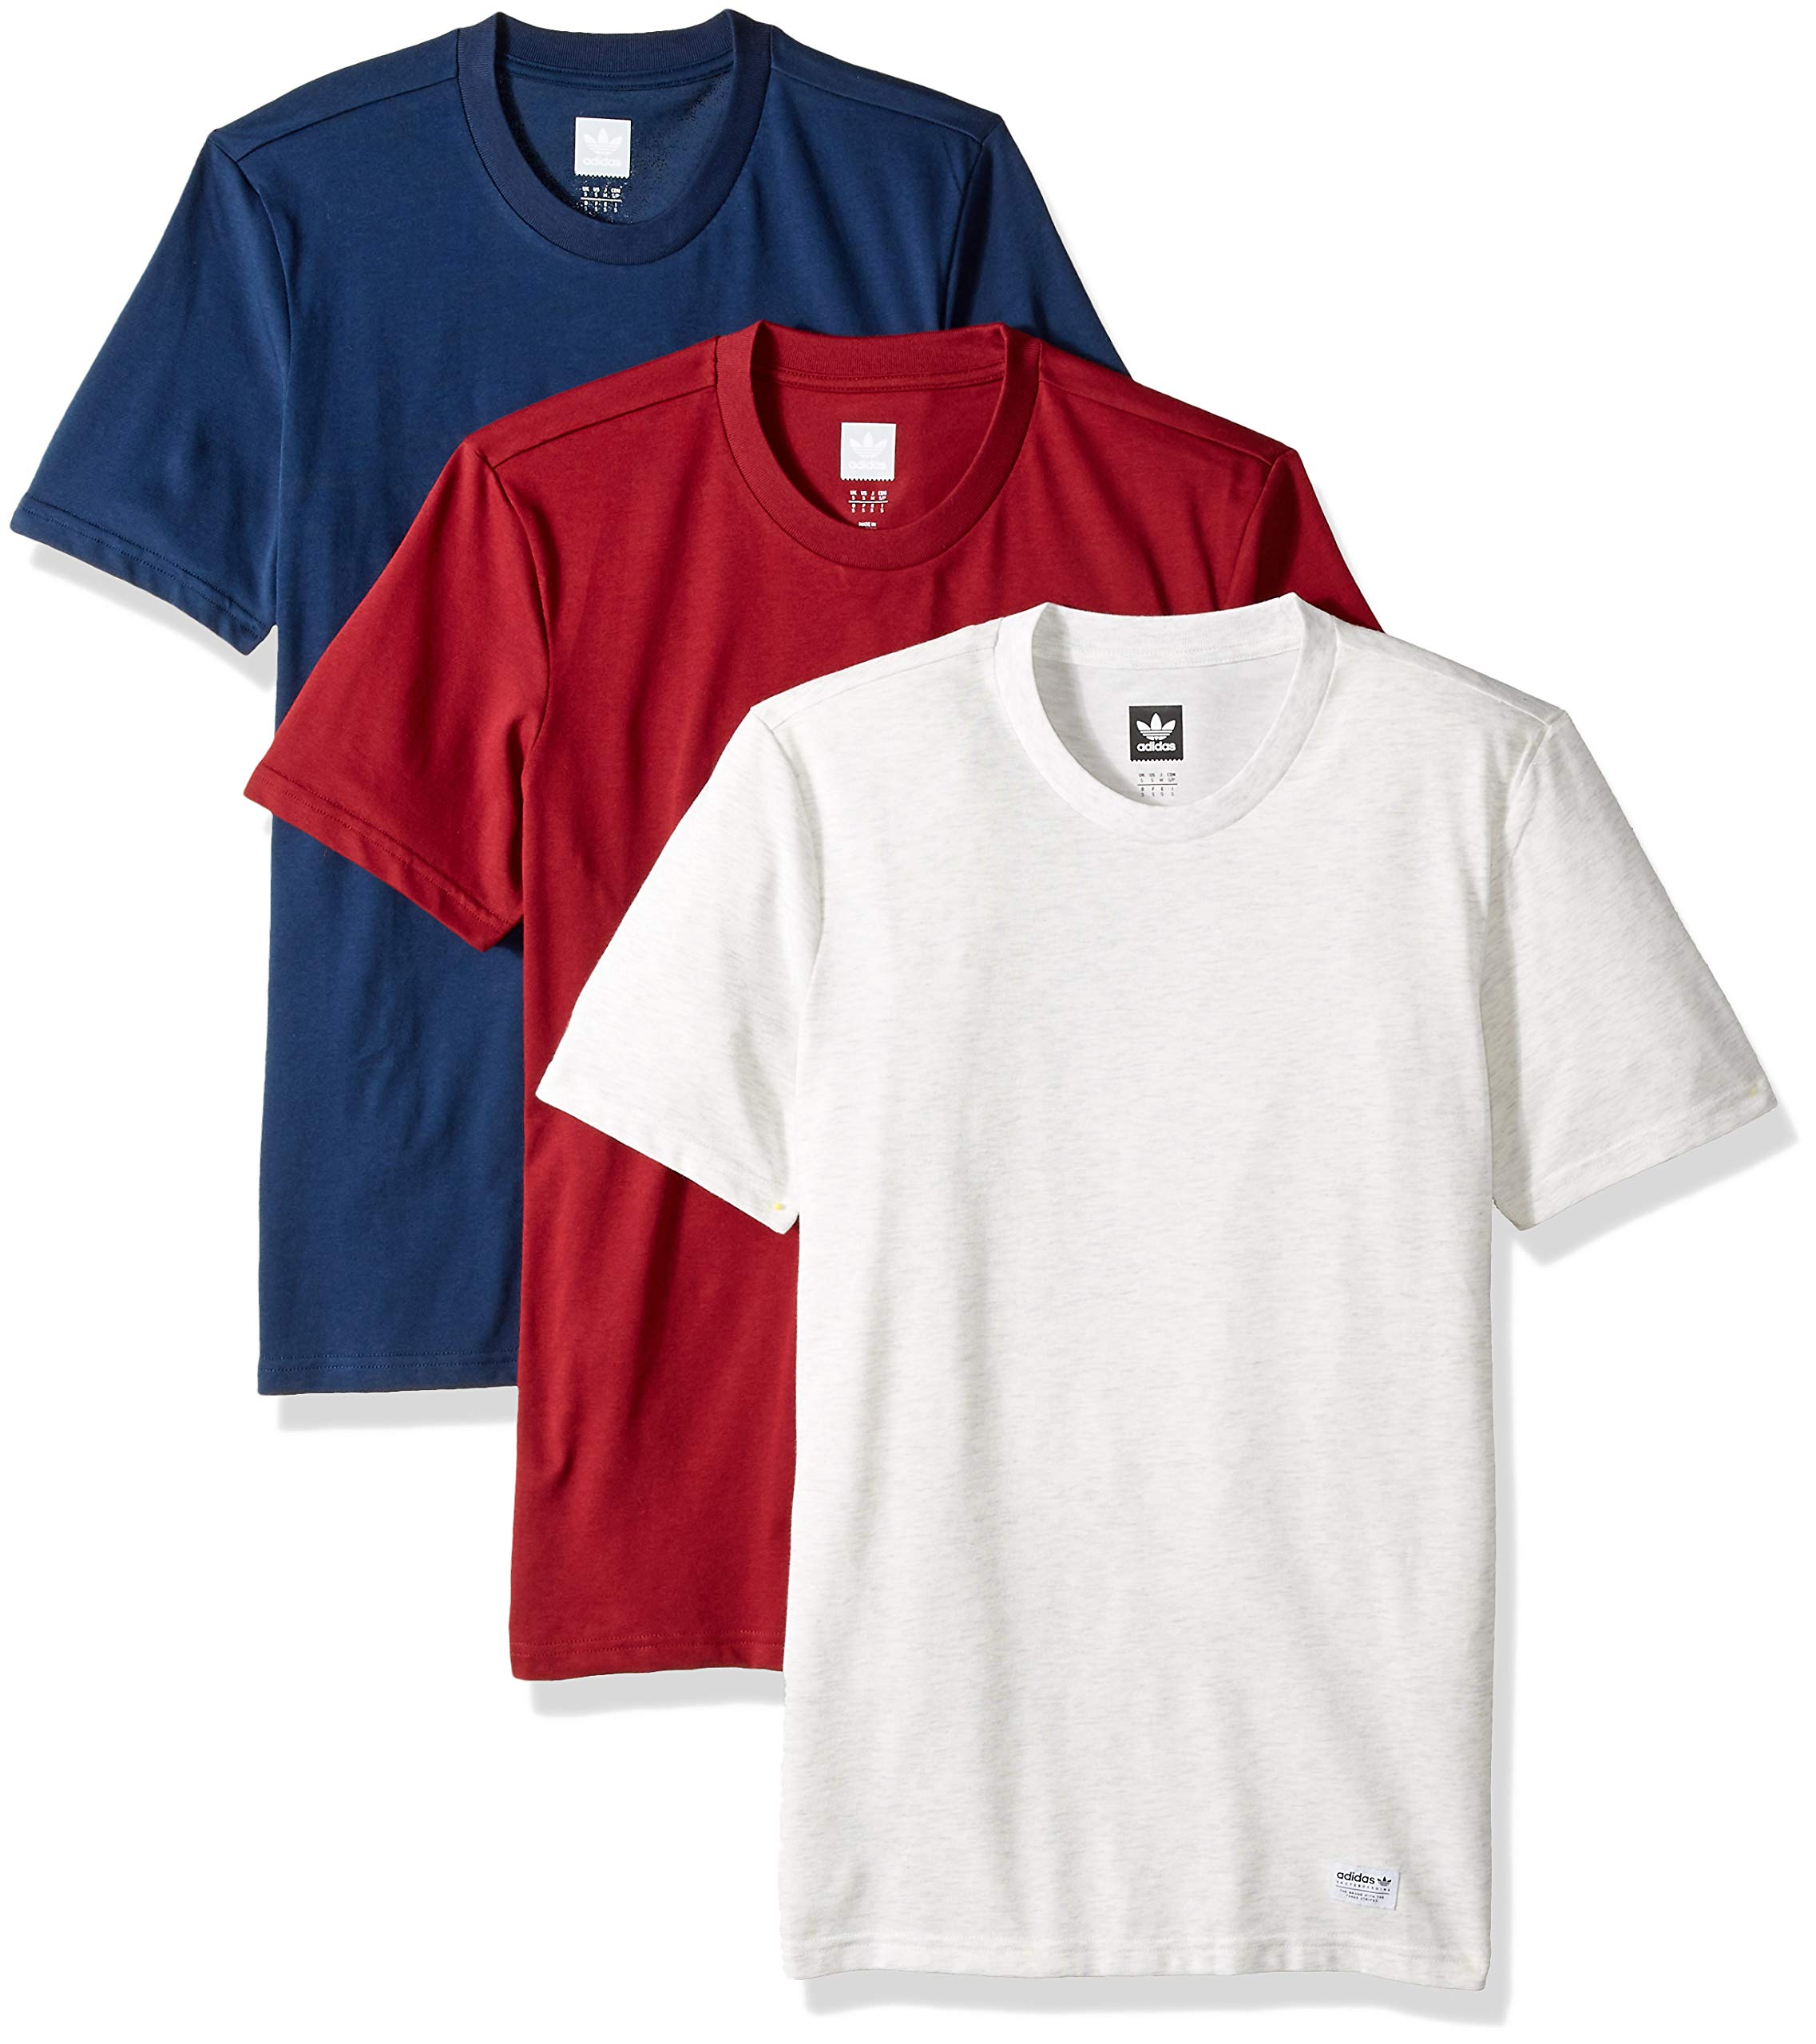 adidas Originals Men's Skateboarding 3 Pack Tees, Pale Melange Navy/Collegiate Burgundy, S by adidas Originals (Image #1)